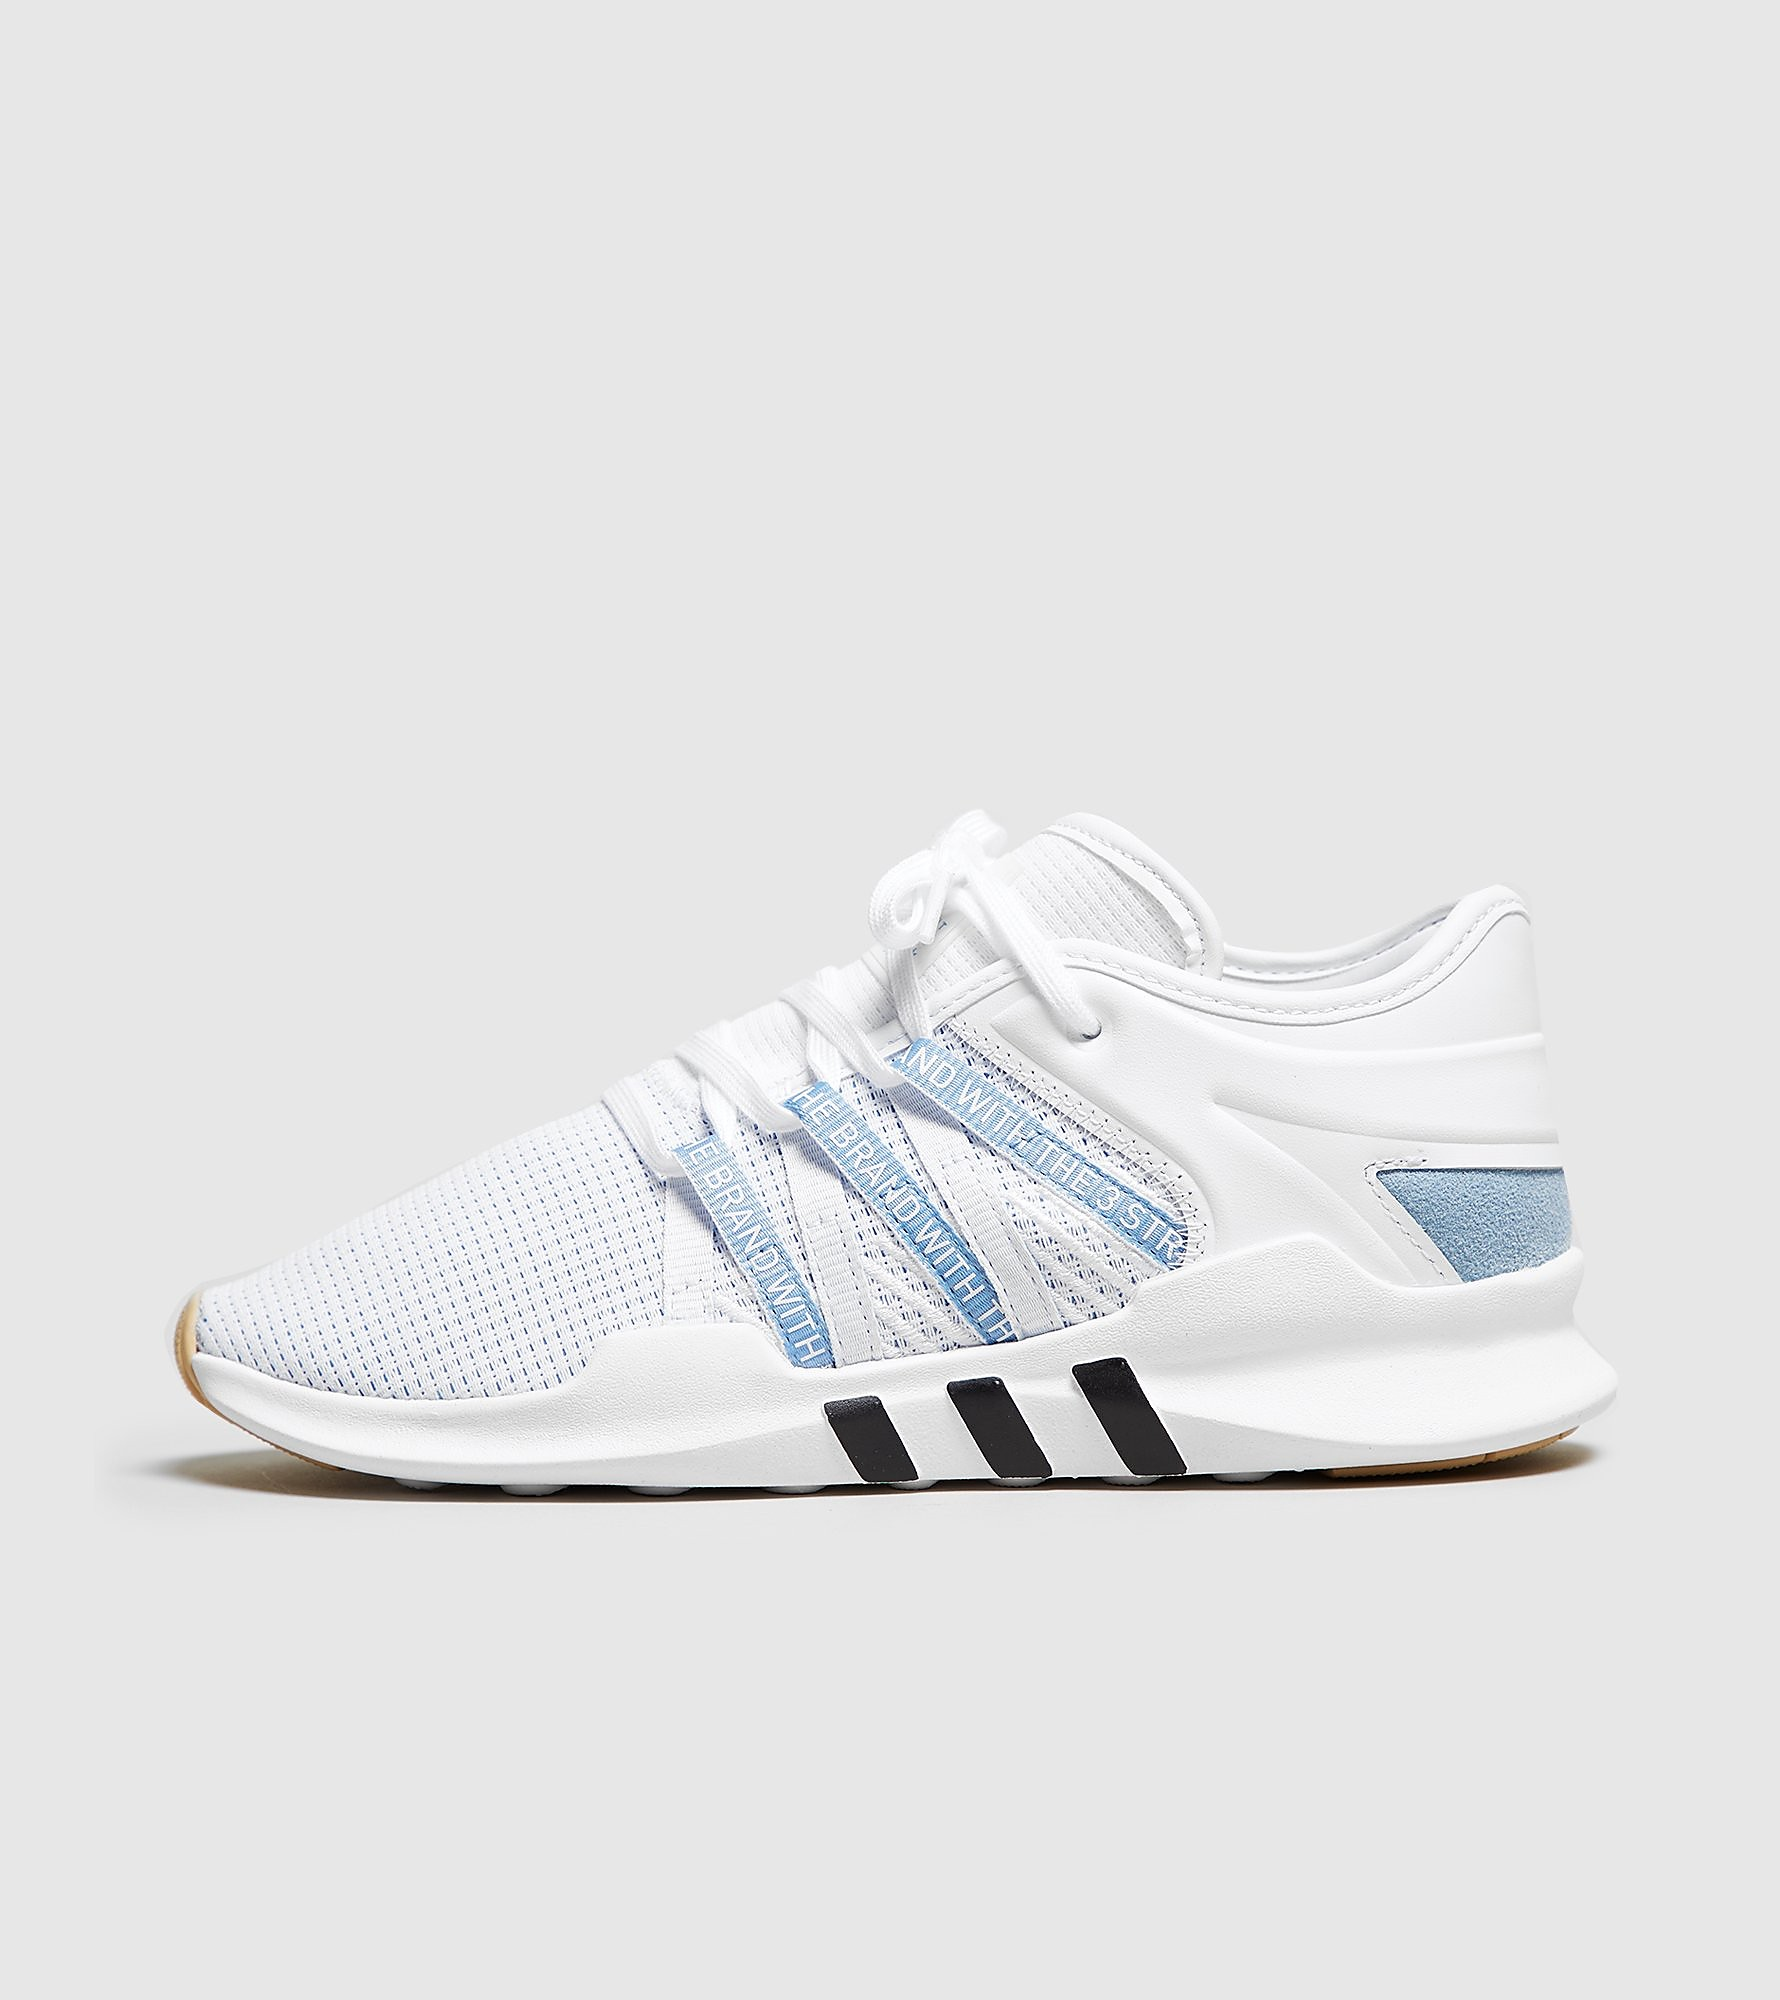 adidas Originals EQT Racing ADV Women's